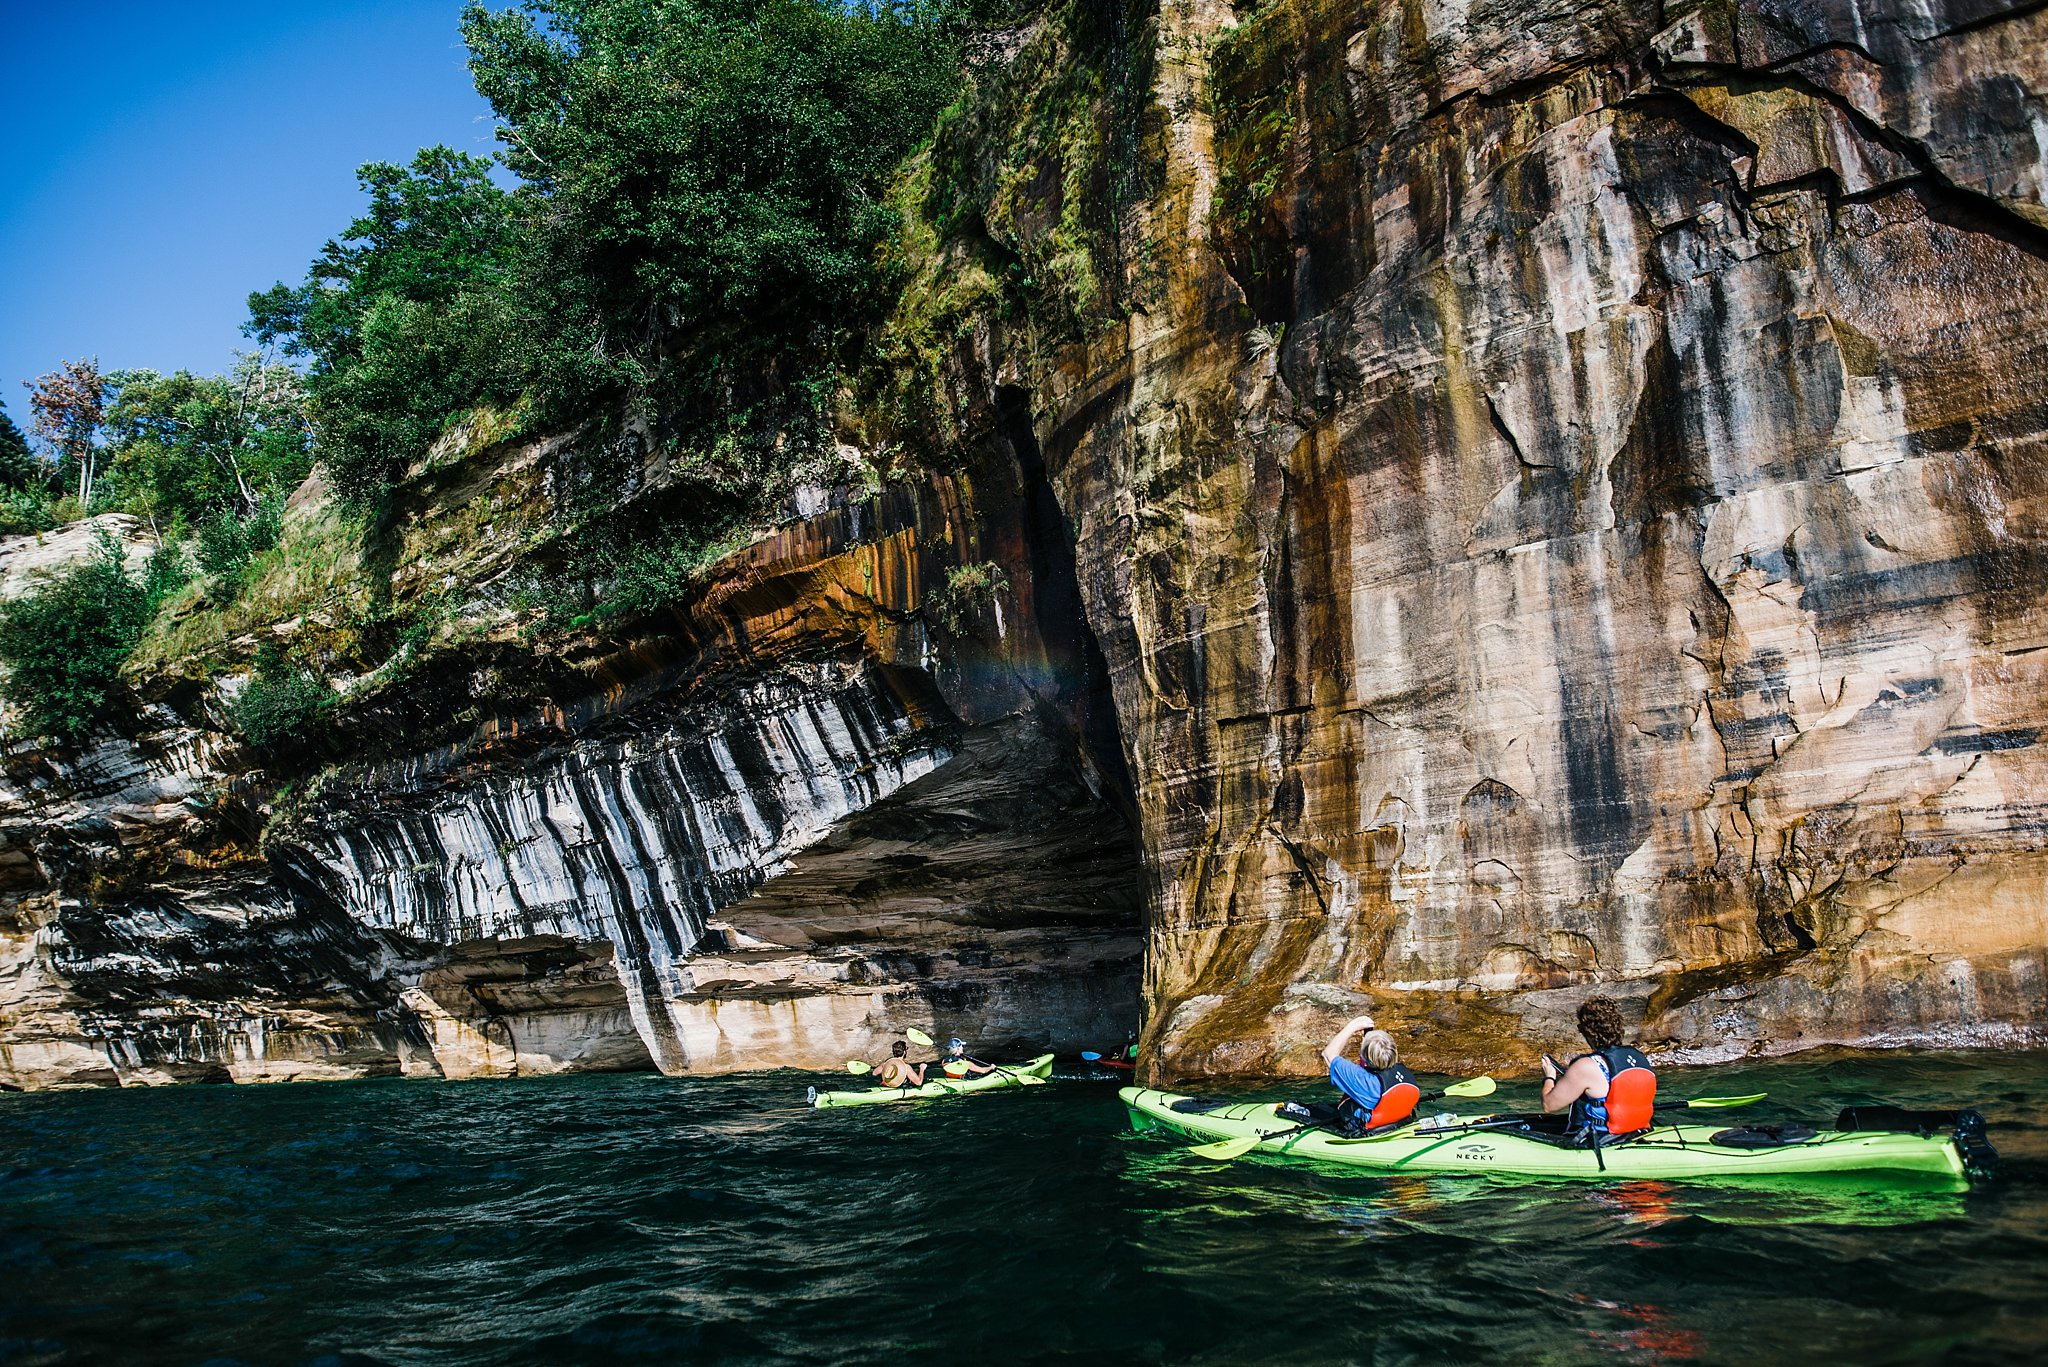 kayaking tour in Pictured rocks